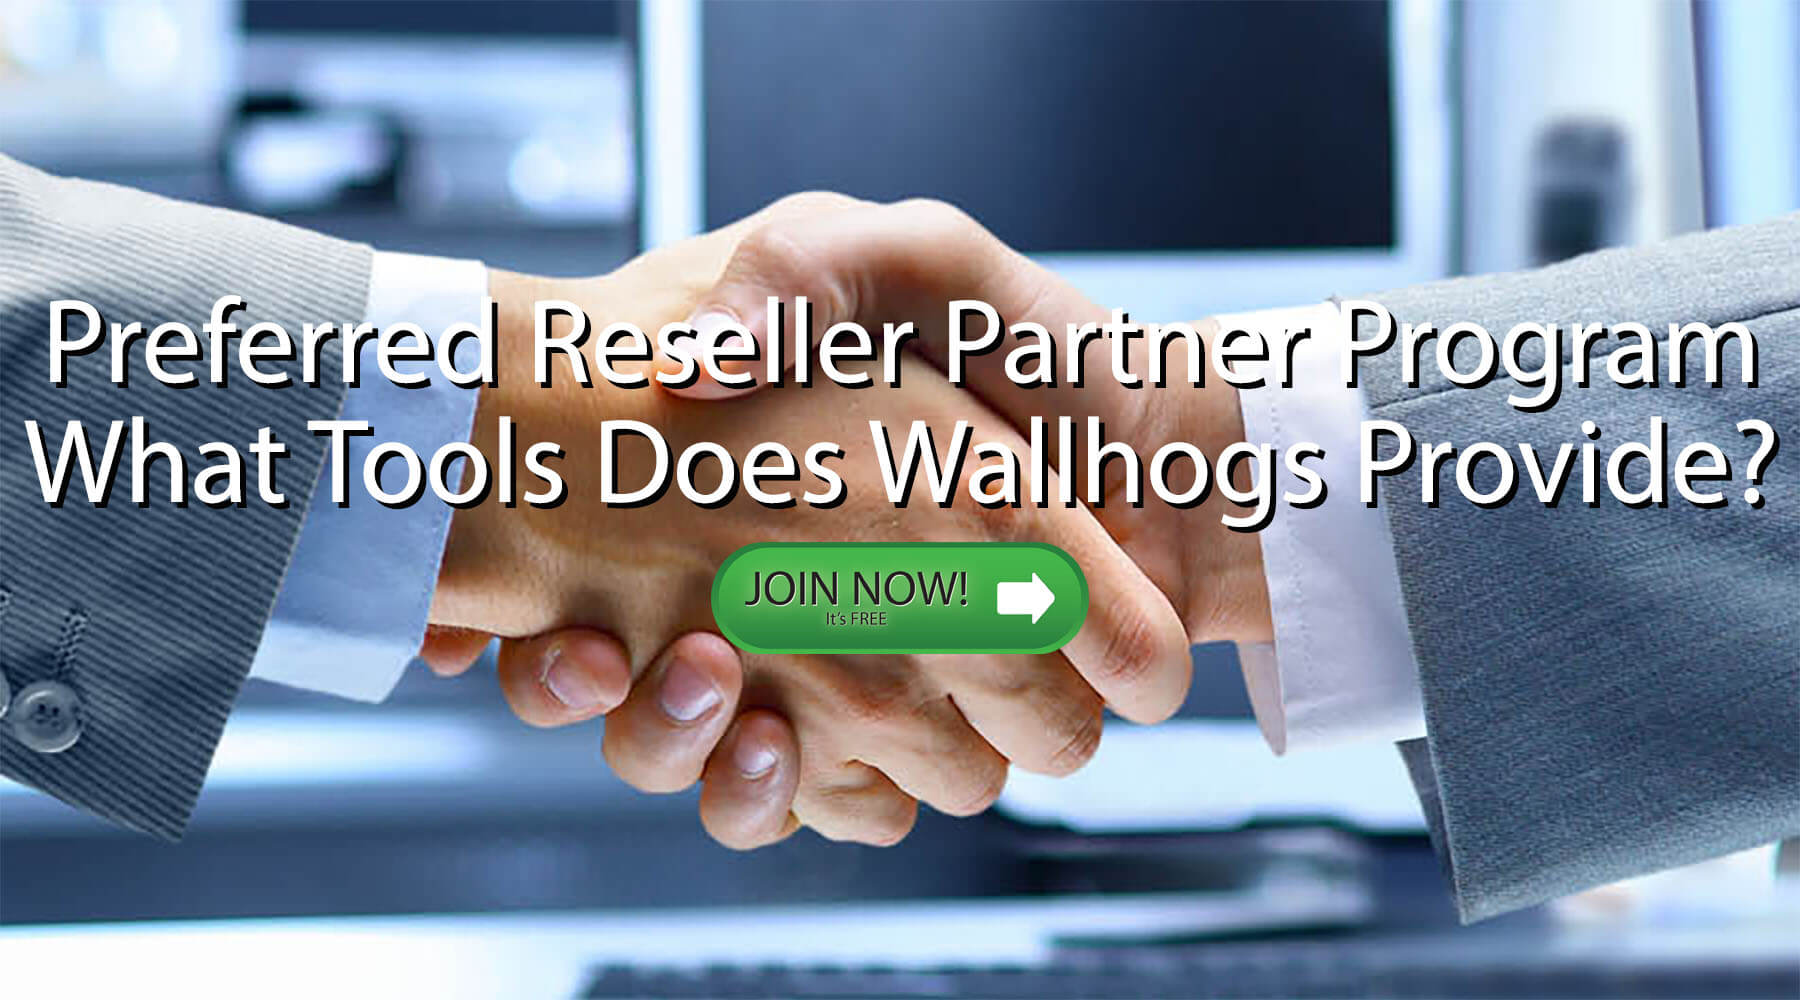 What Tools Are Available In the Wallhogs Preferred Reseller Partner Program Enrollment